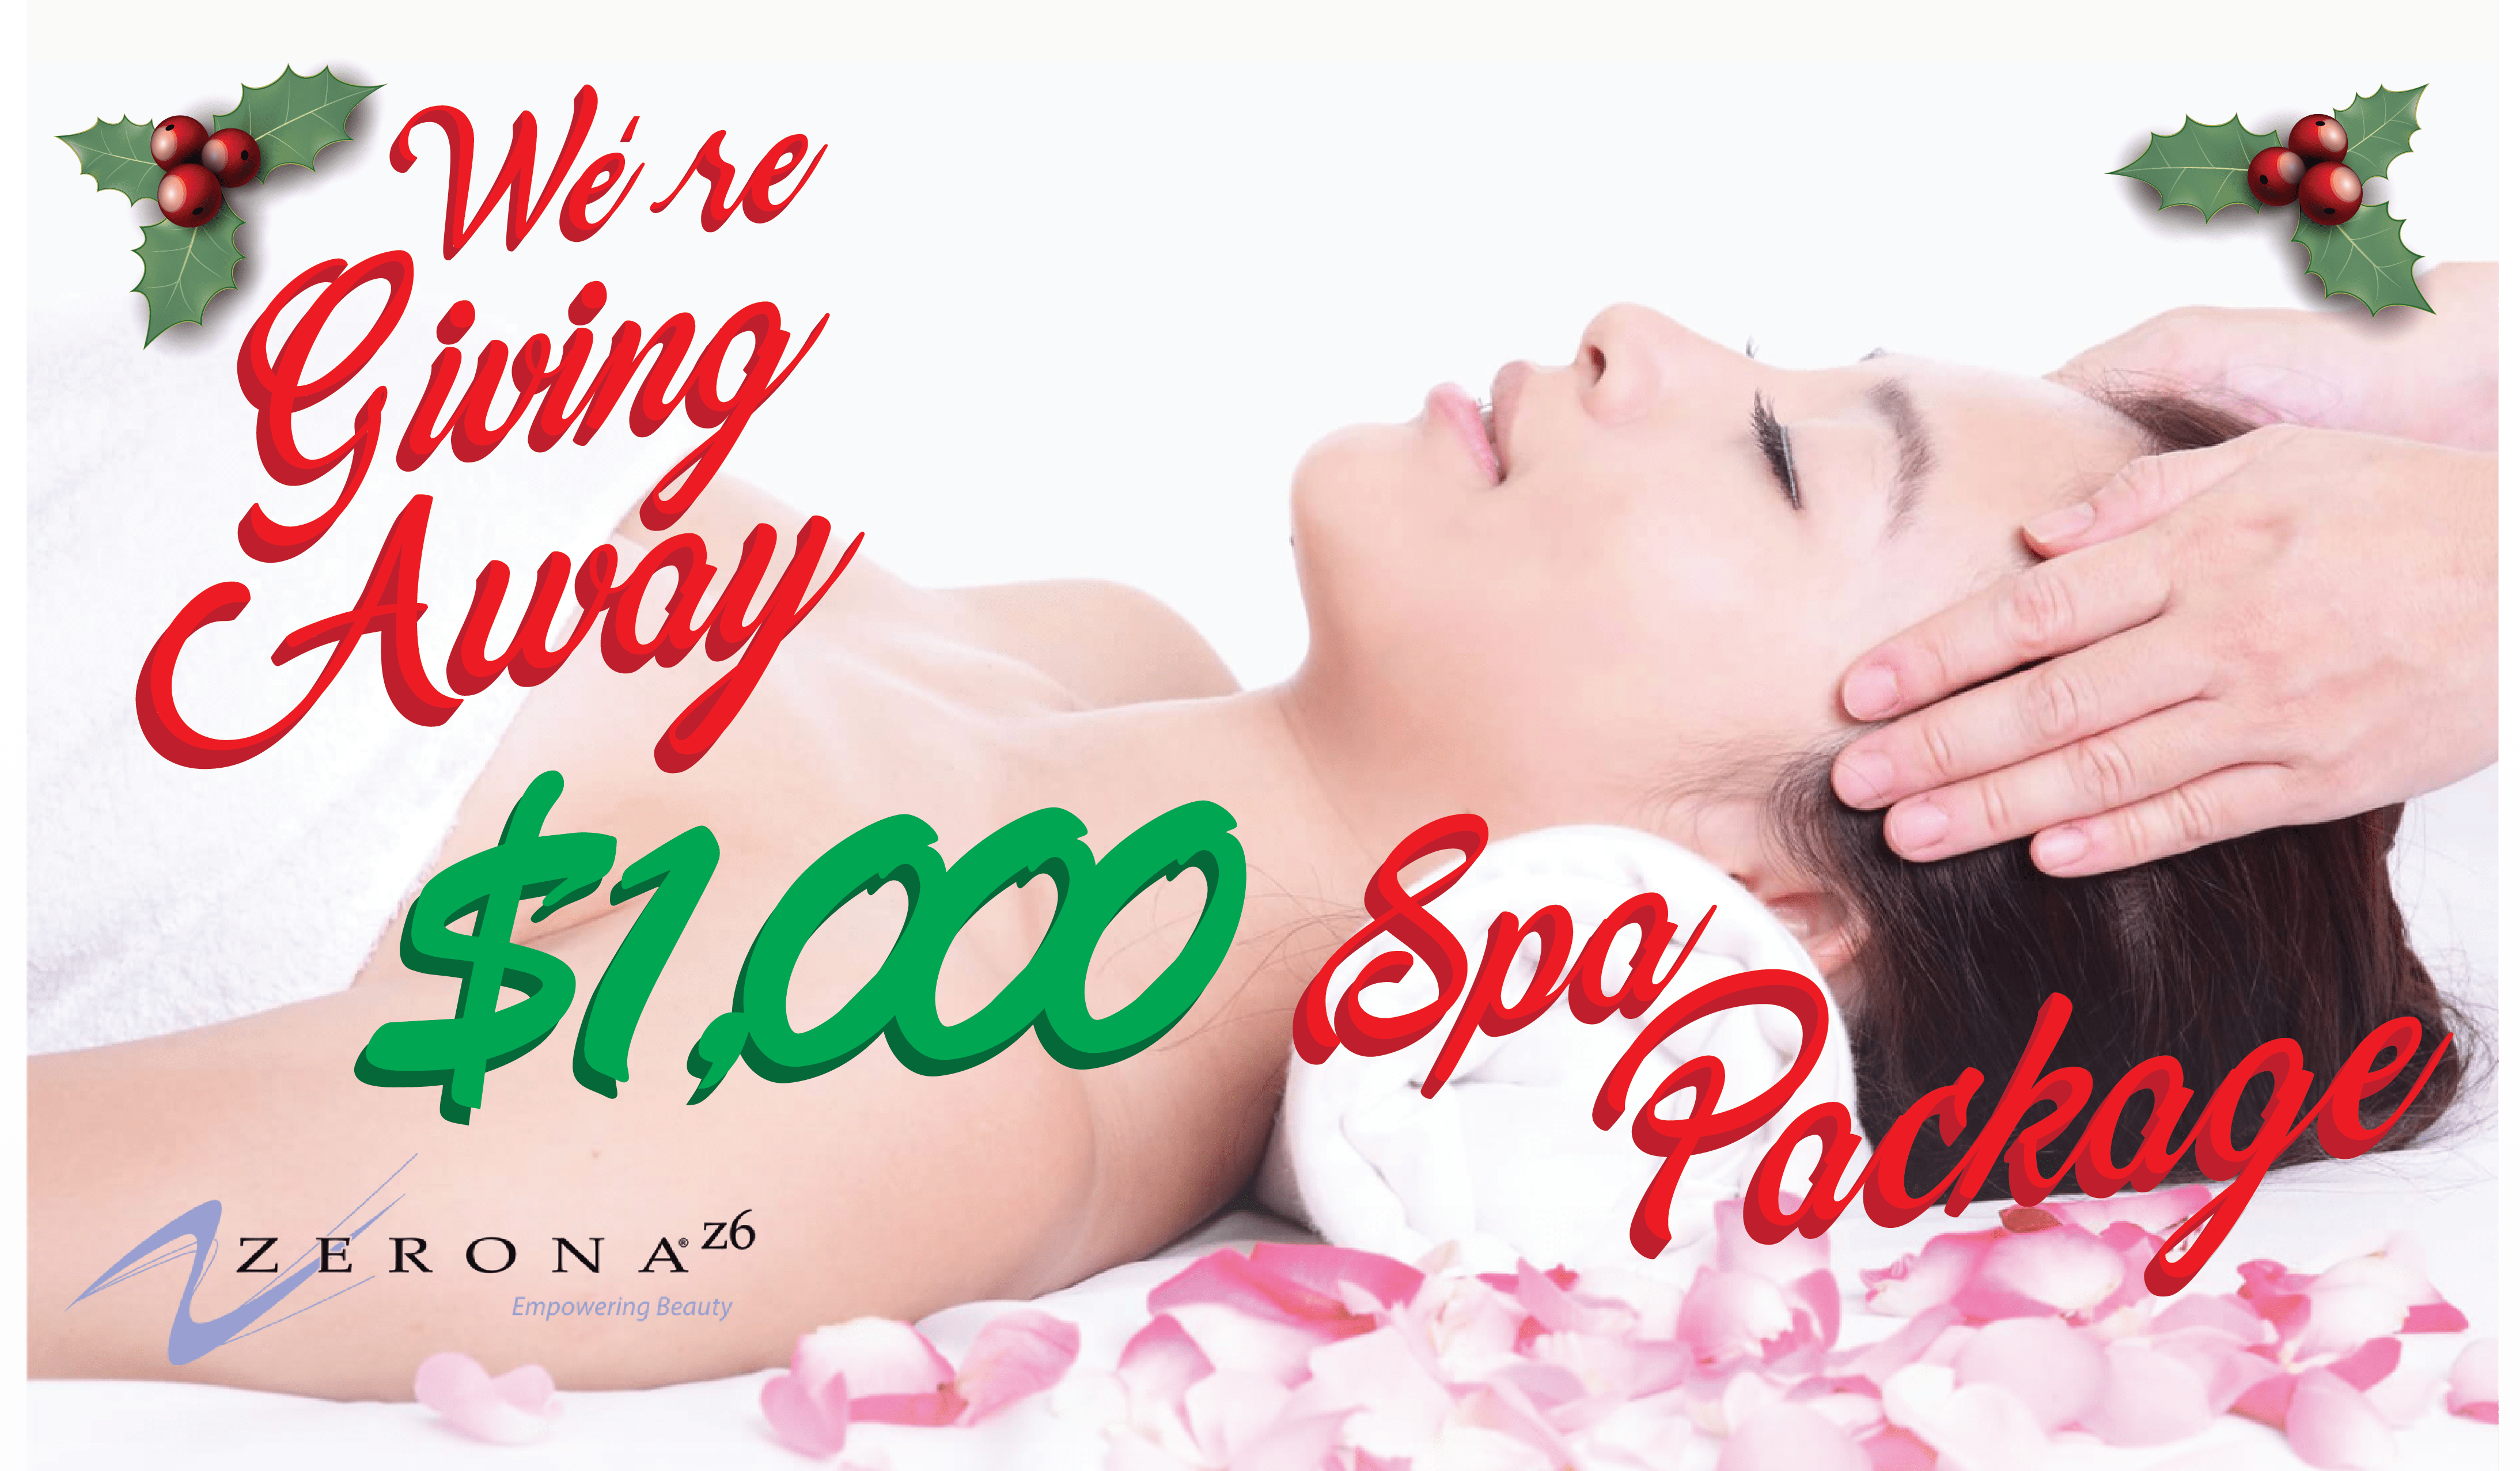 Westlake Lymphatic we're giving away $1,000 spa package